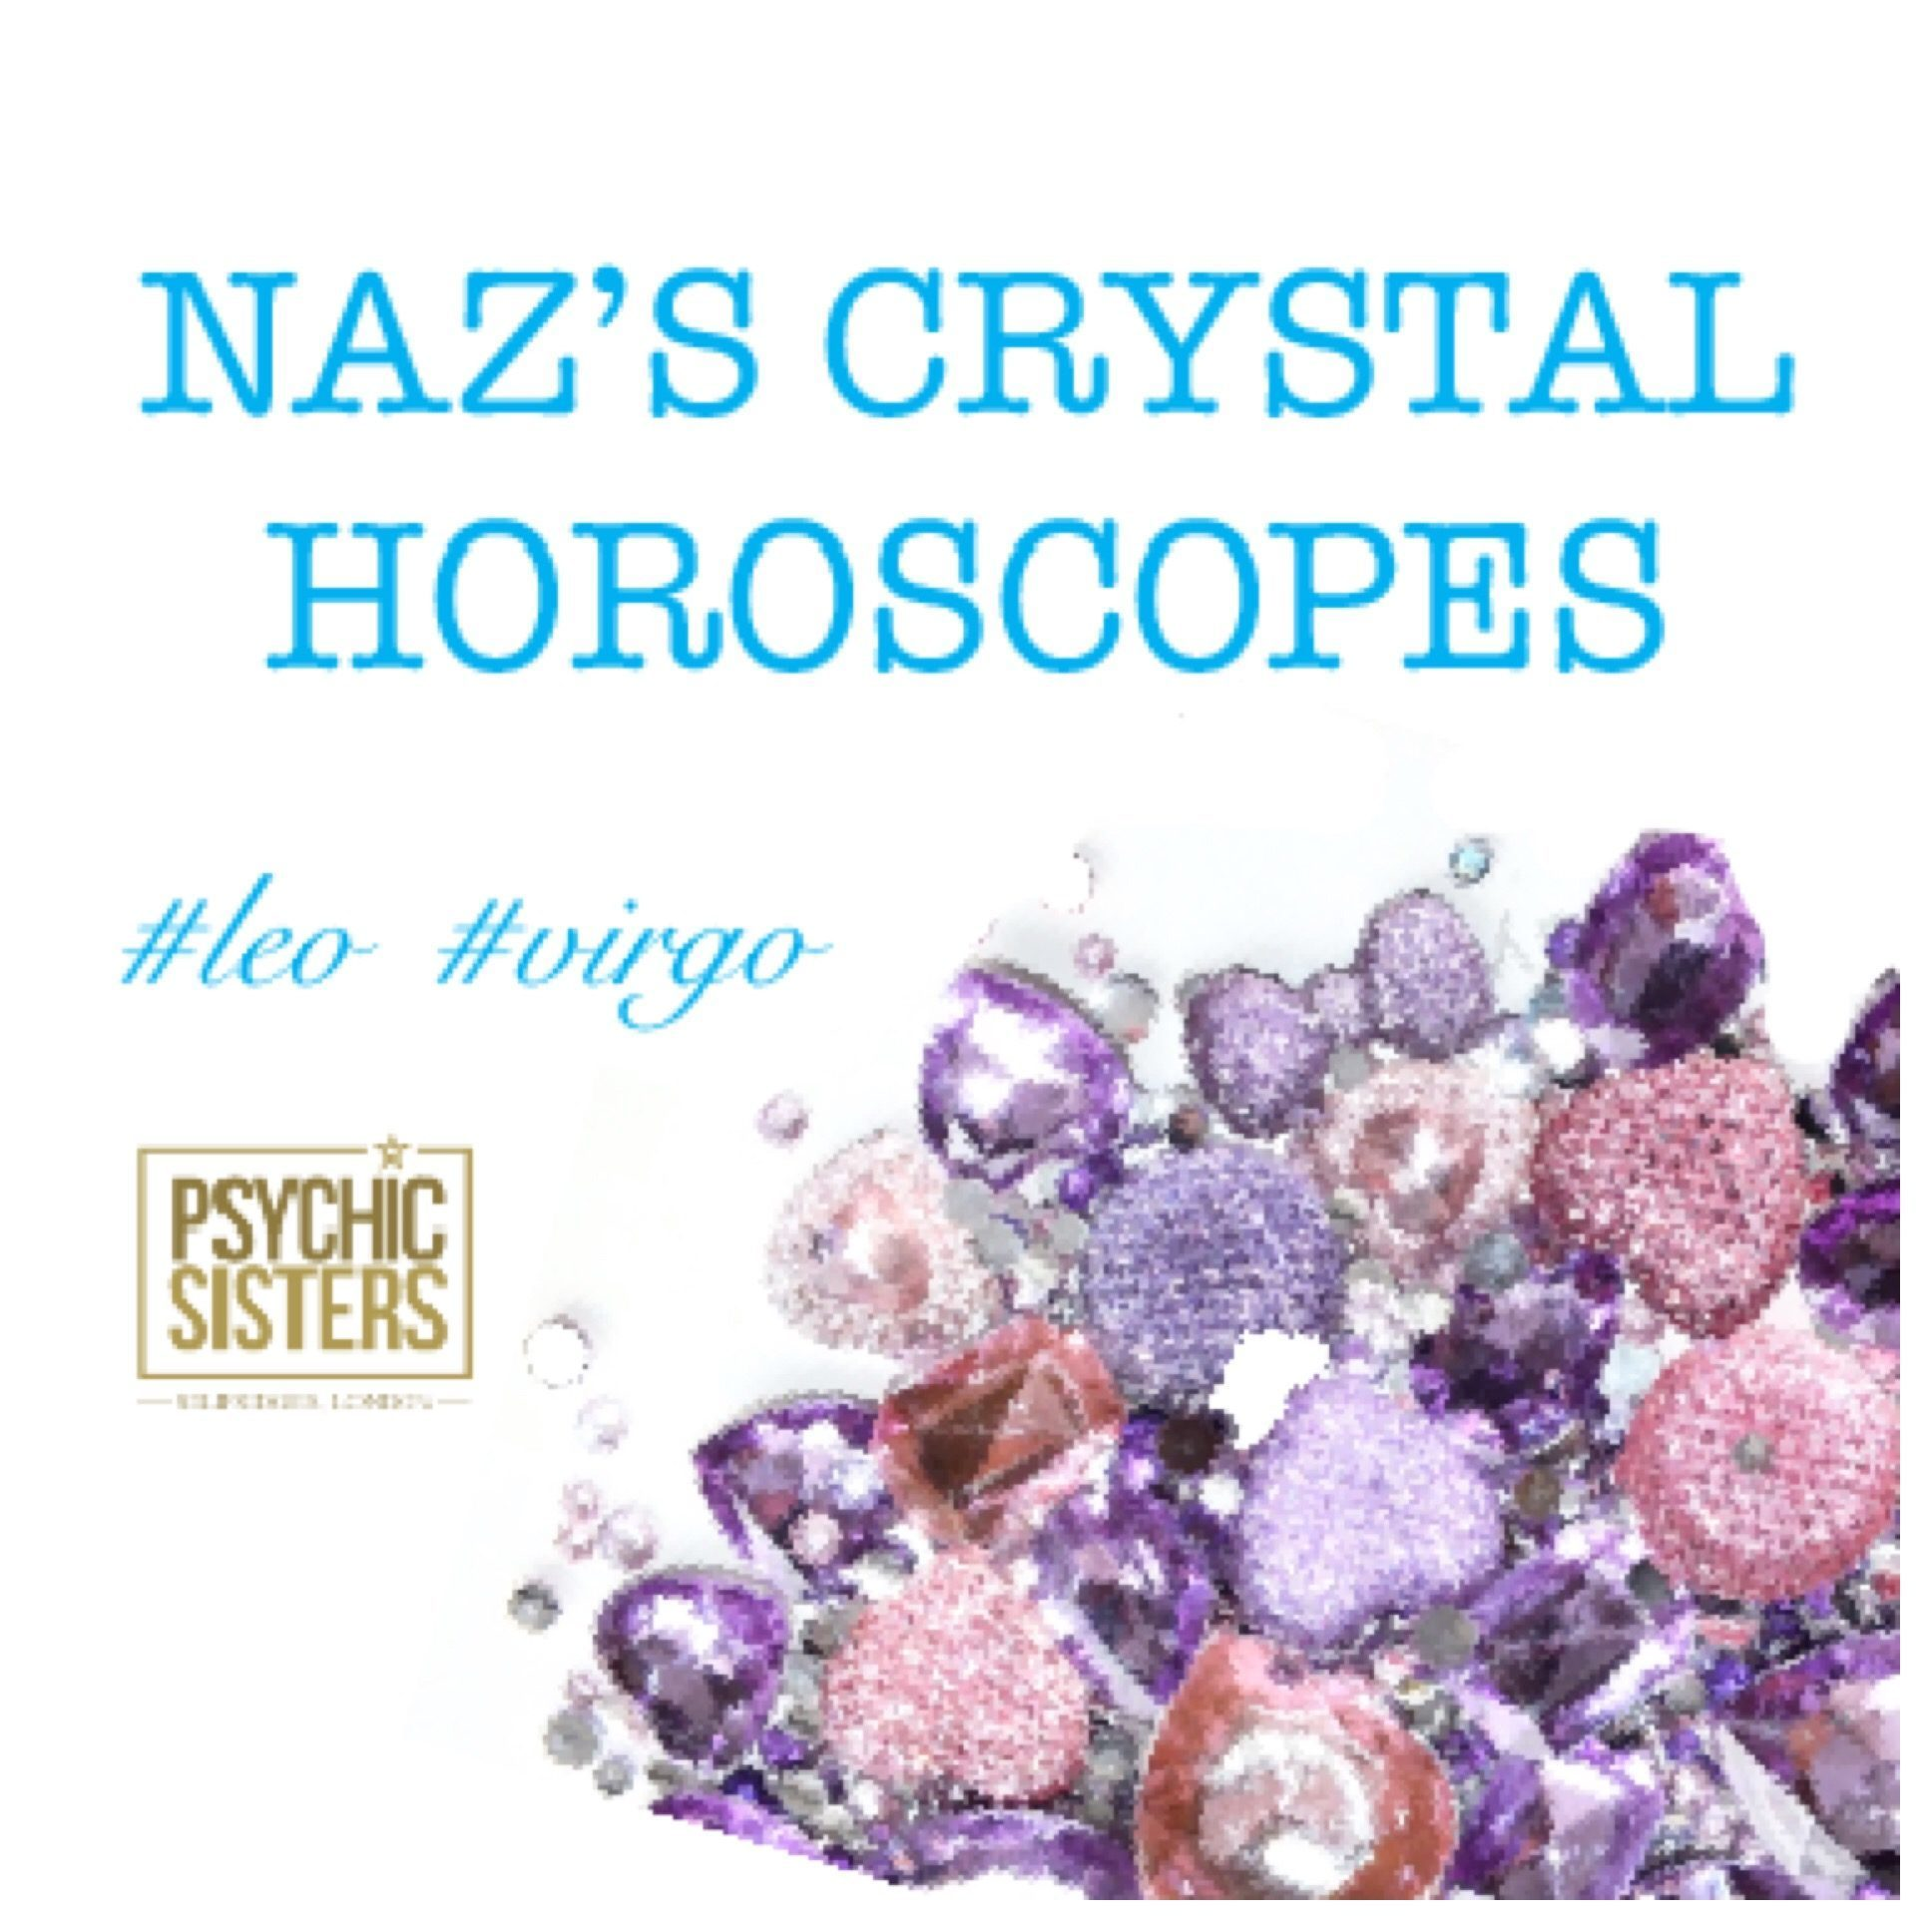 Naz's crystal horoscopes 27th May - 2nd June 2018